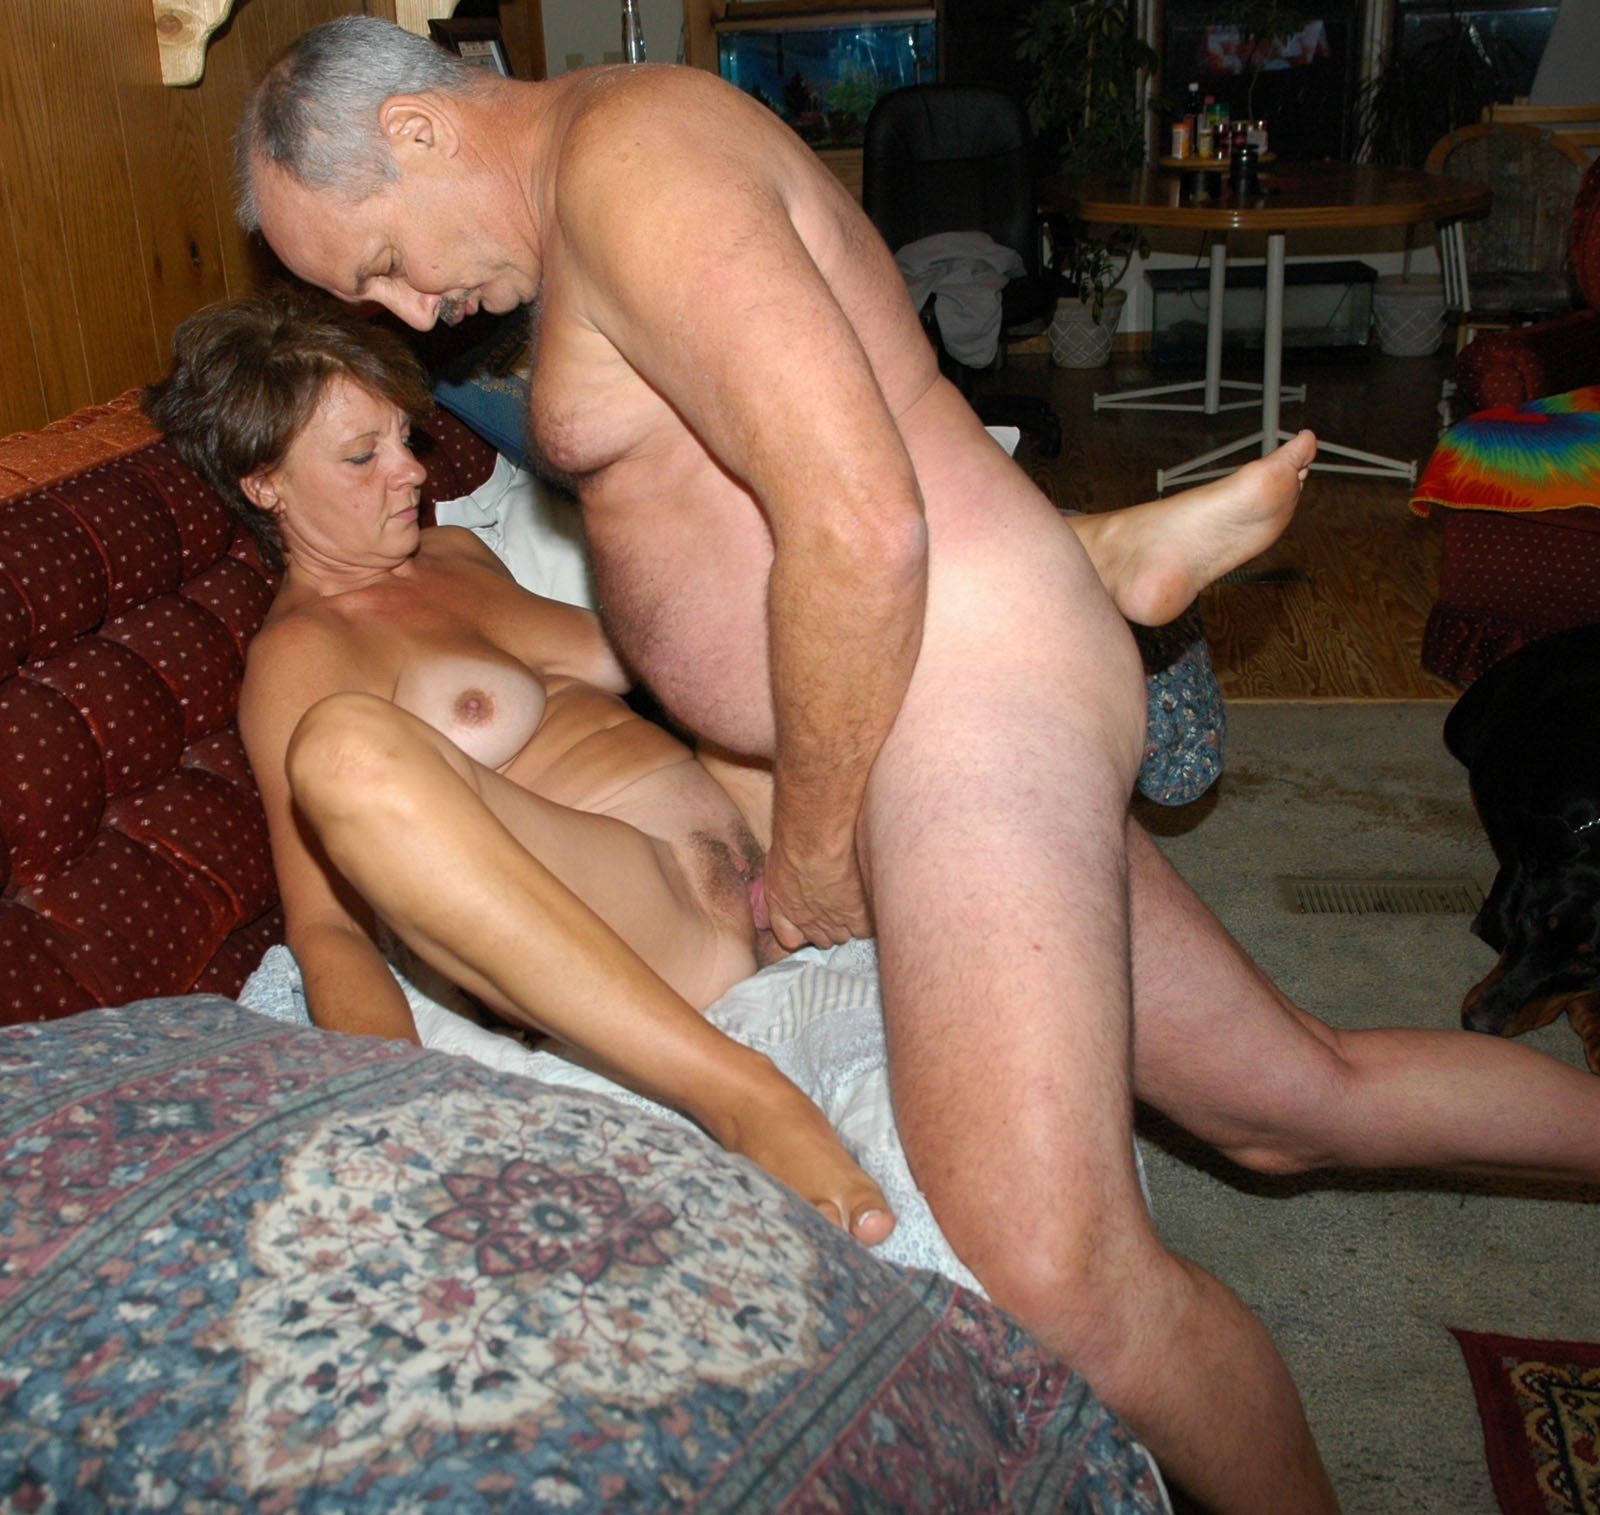 Mature women homemade sex